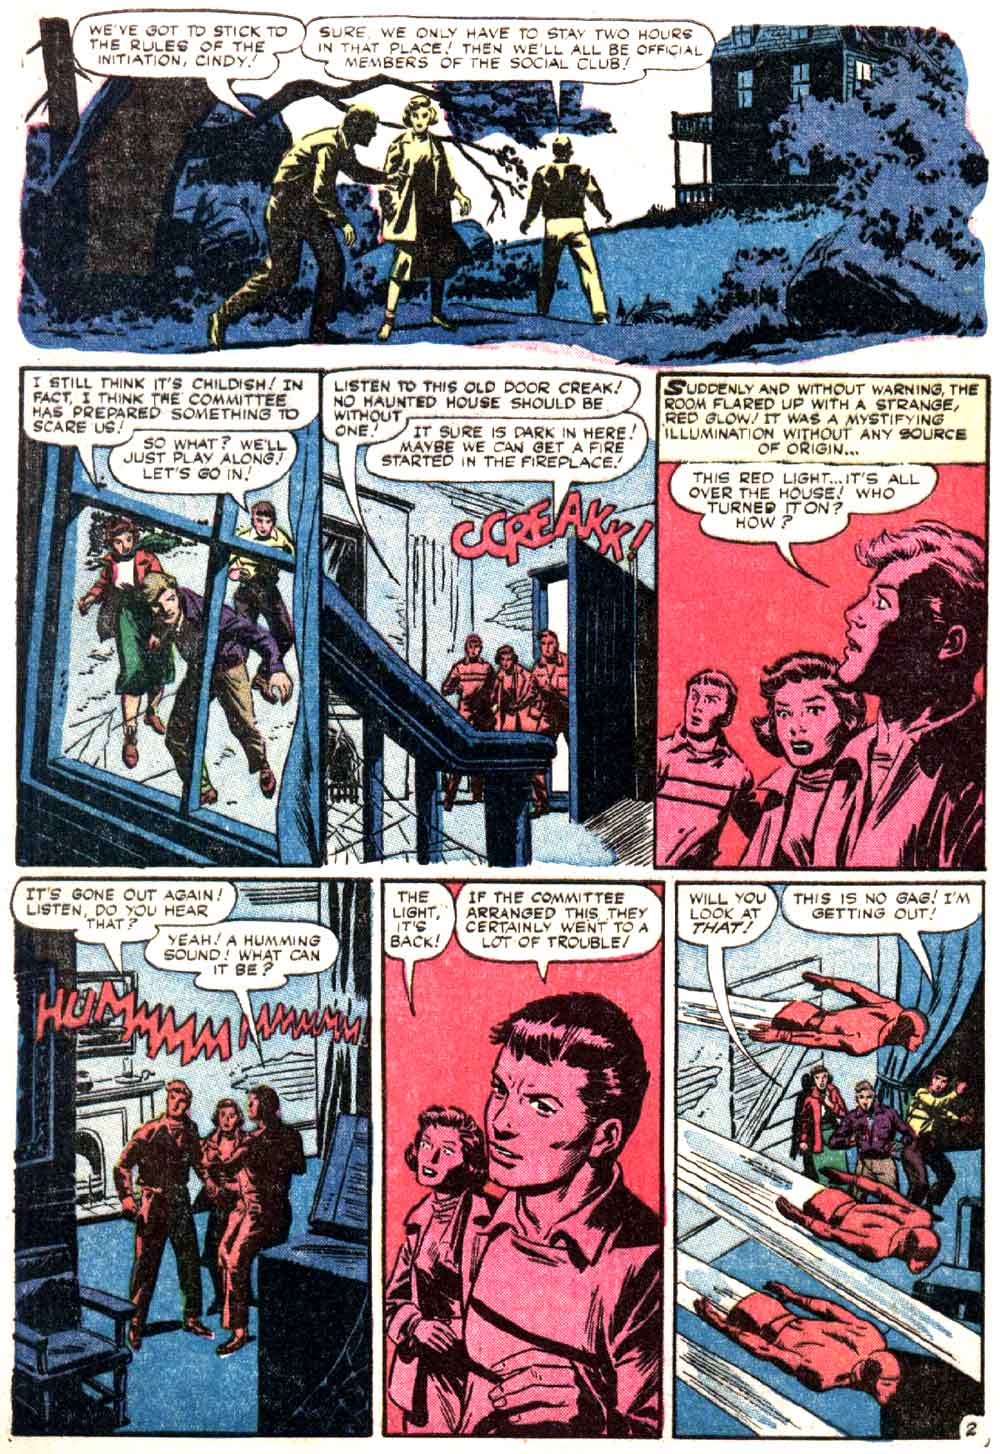 World of Mystery v1 #6 atlas comic book page art by Al Williamson